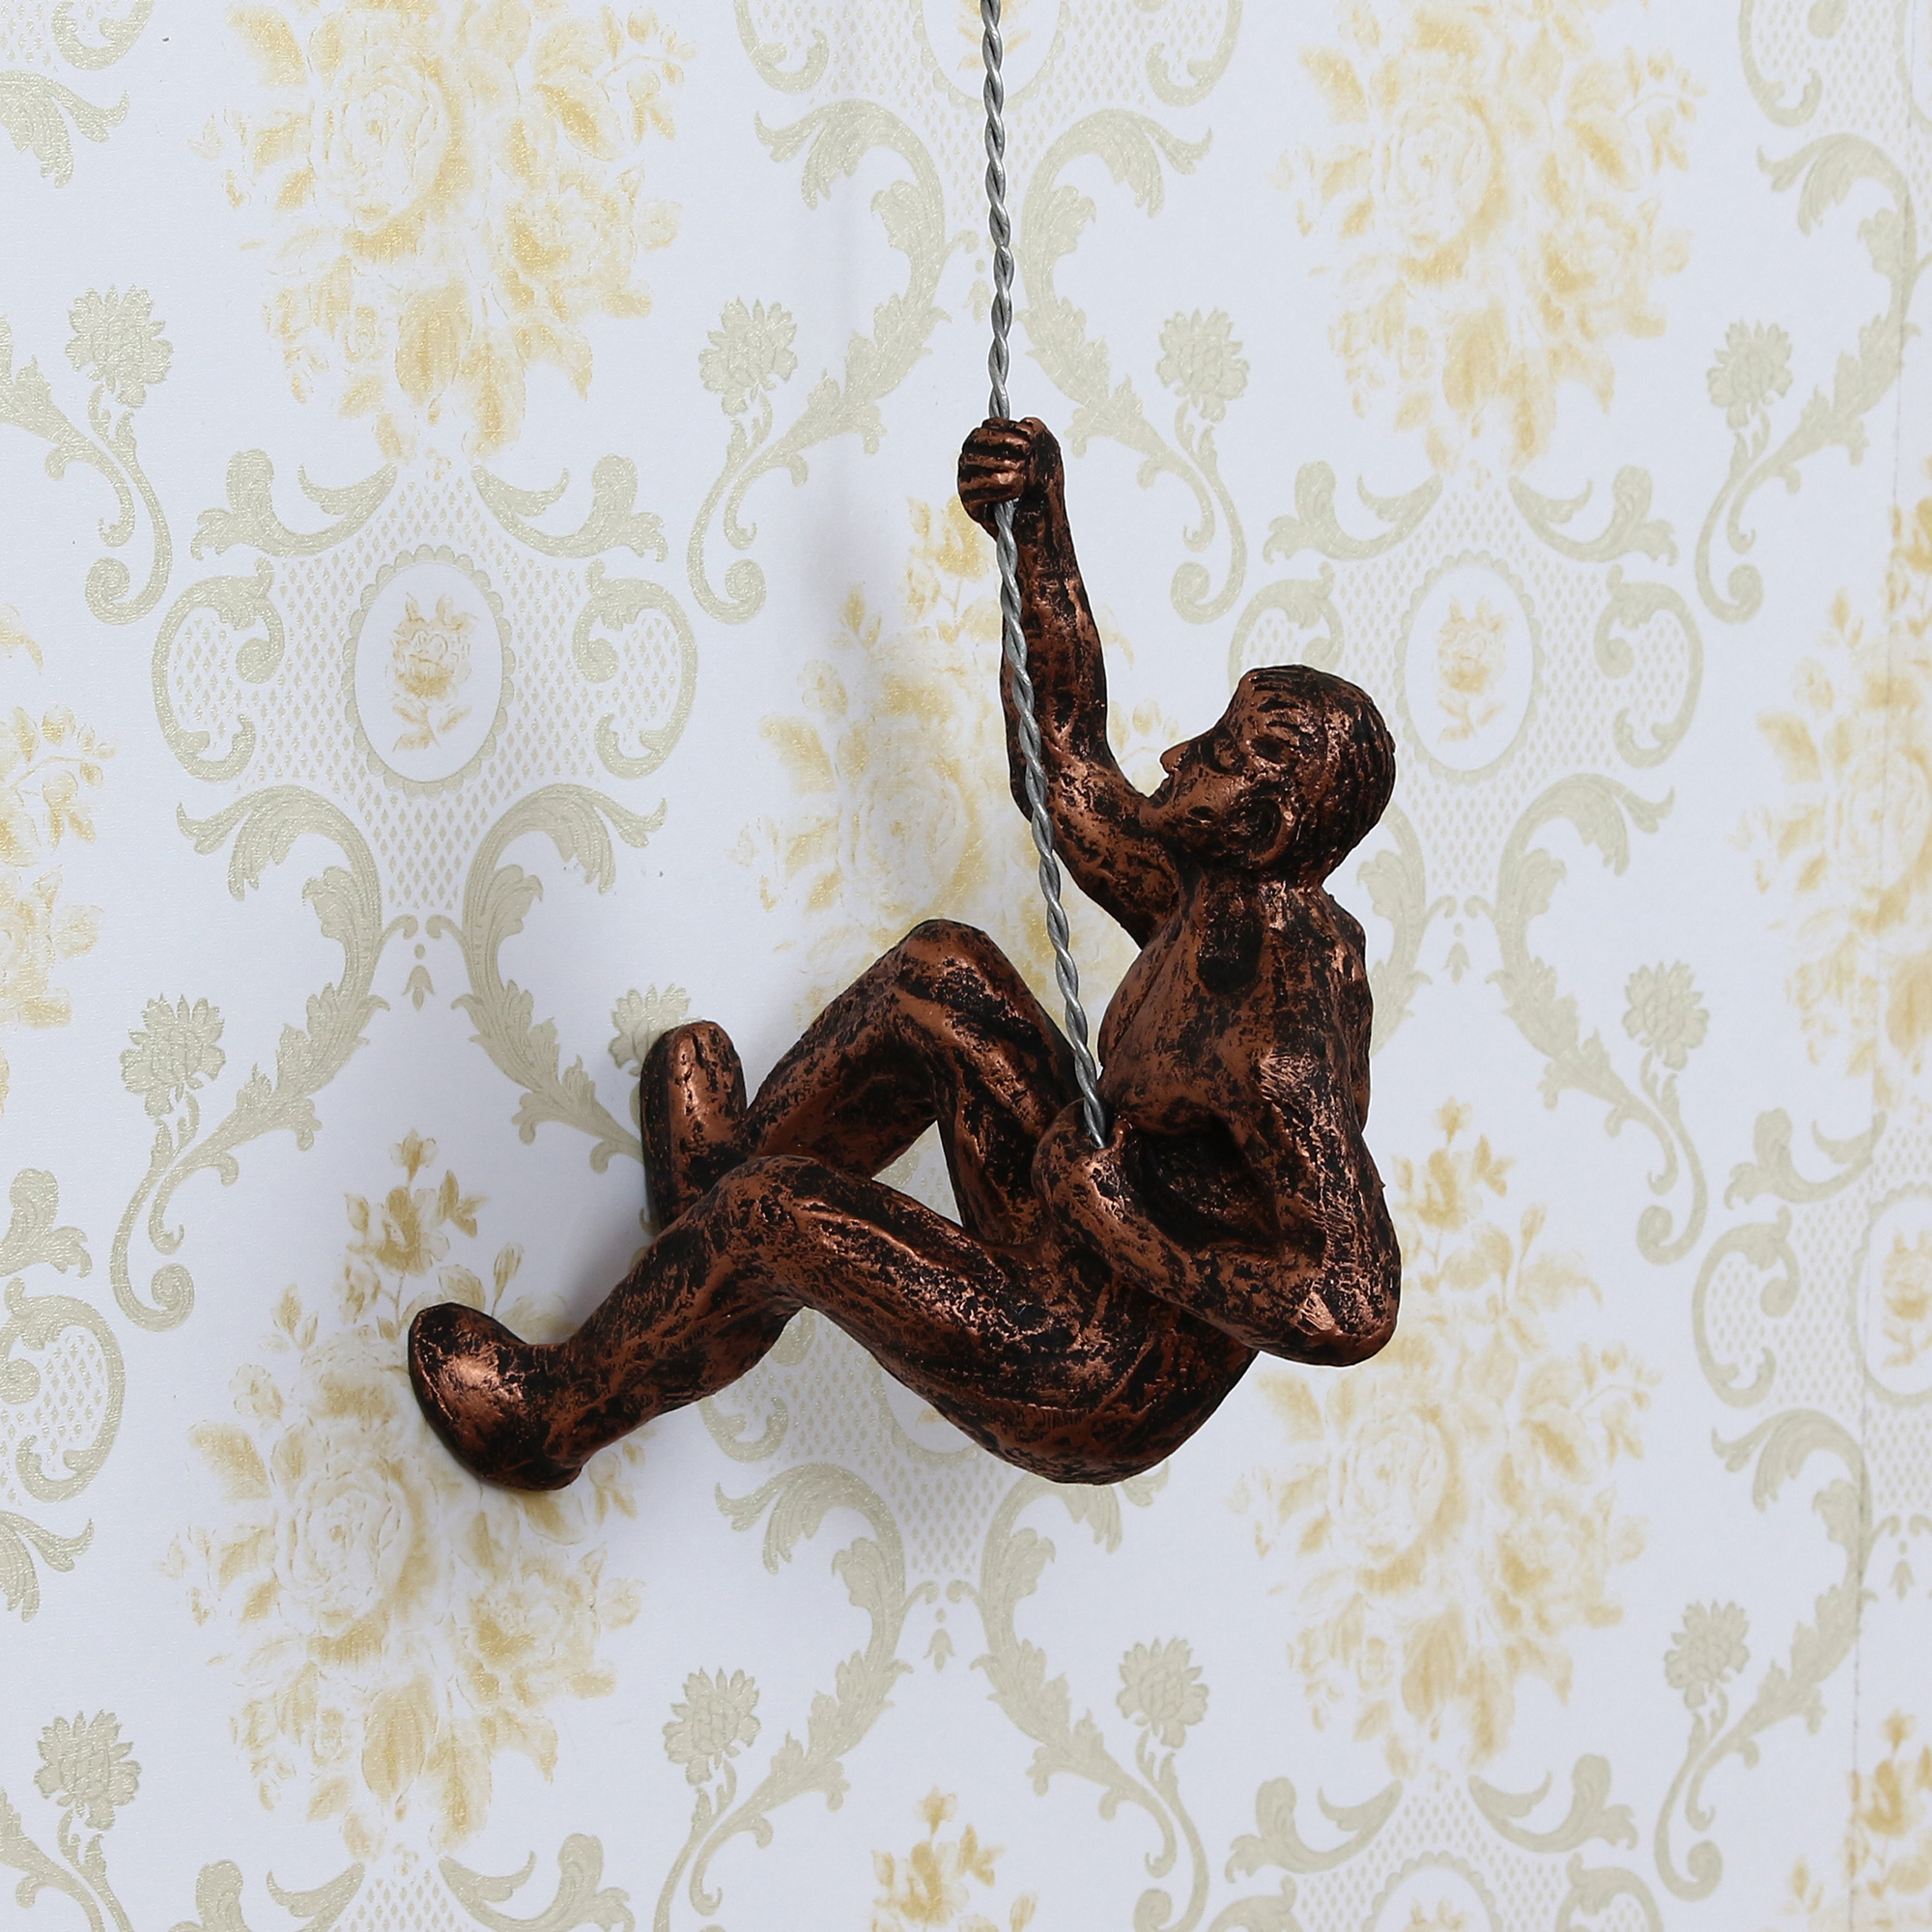 Man Trying to Climb Decorative Wall Hanging Statue Indian Home Decor